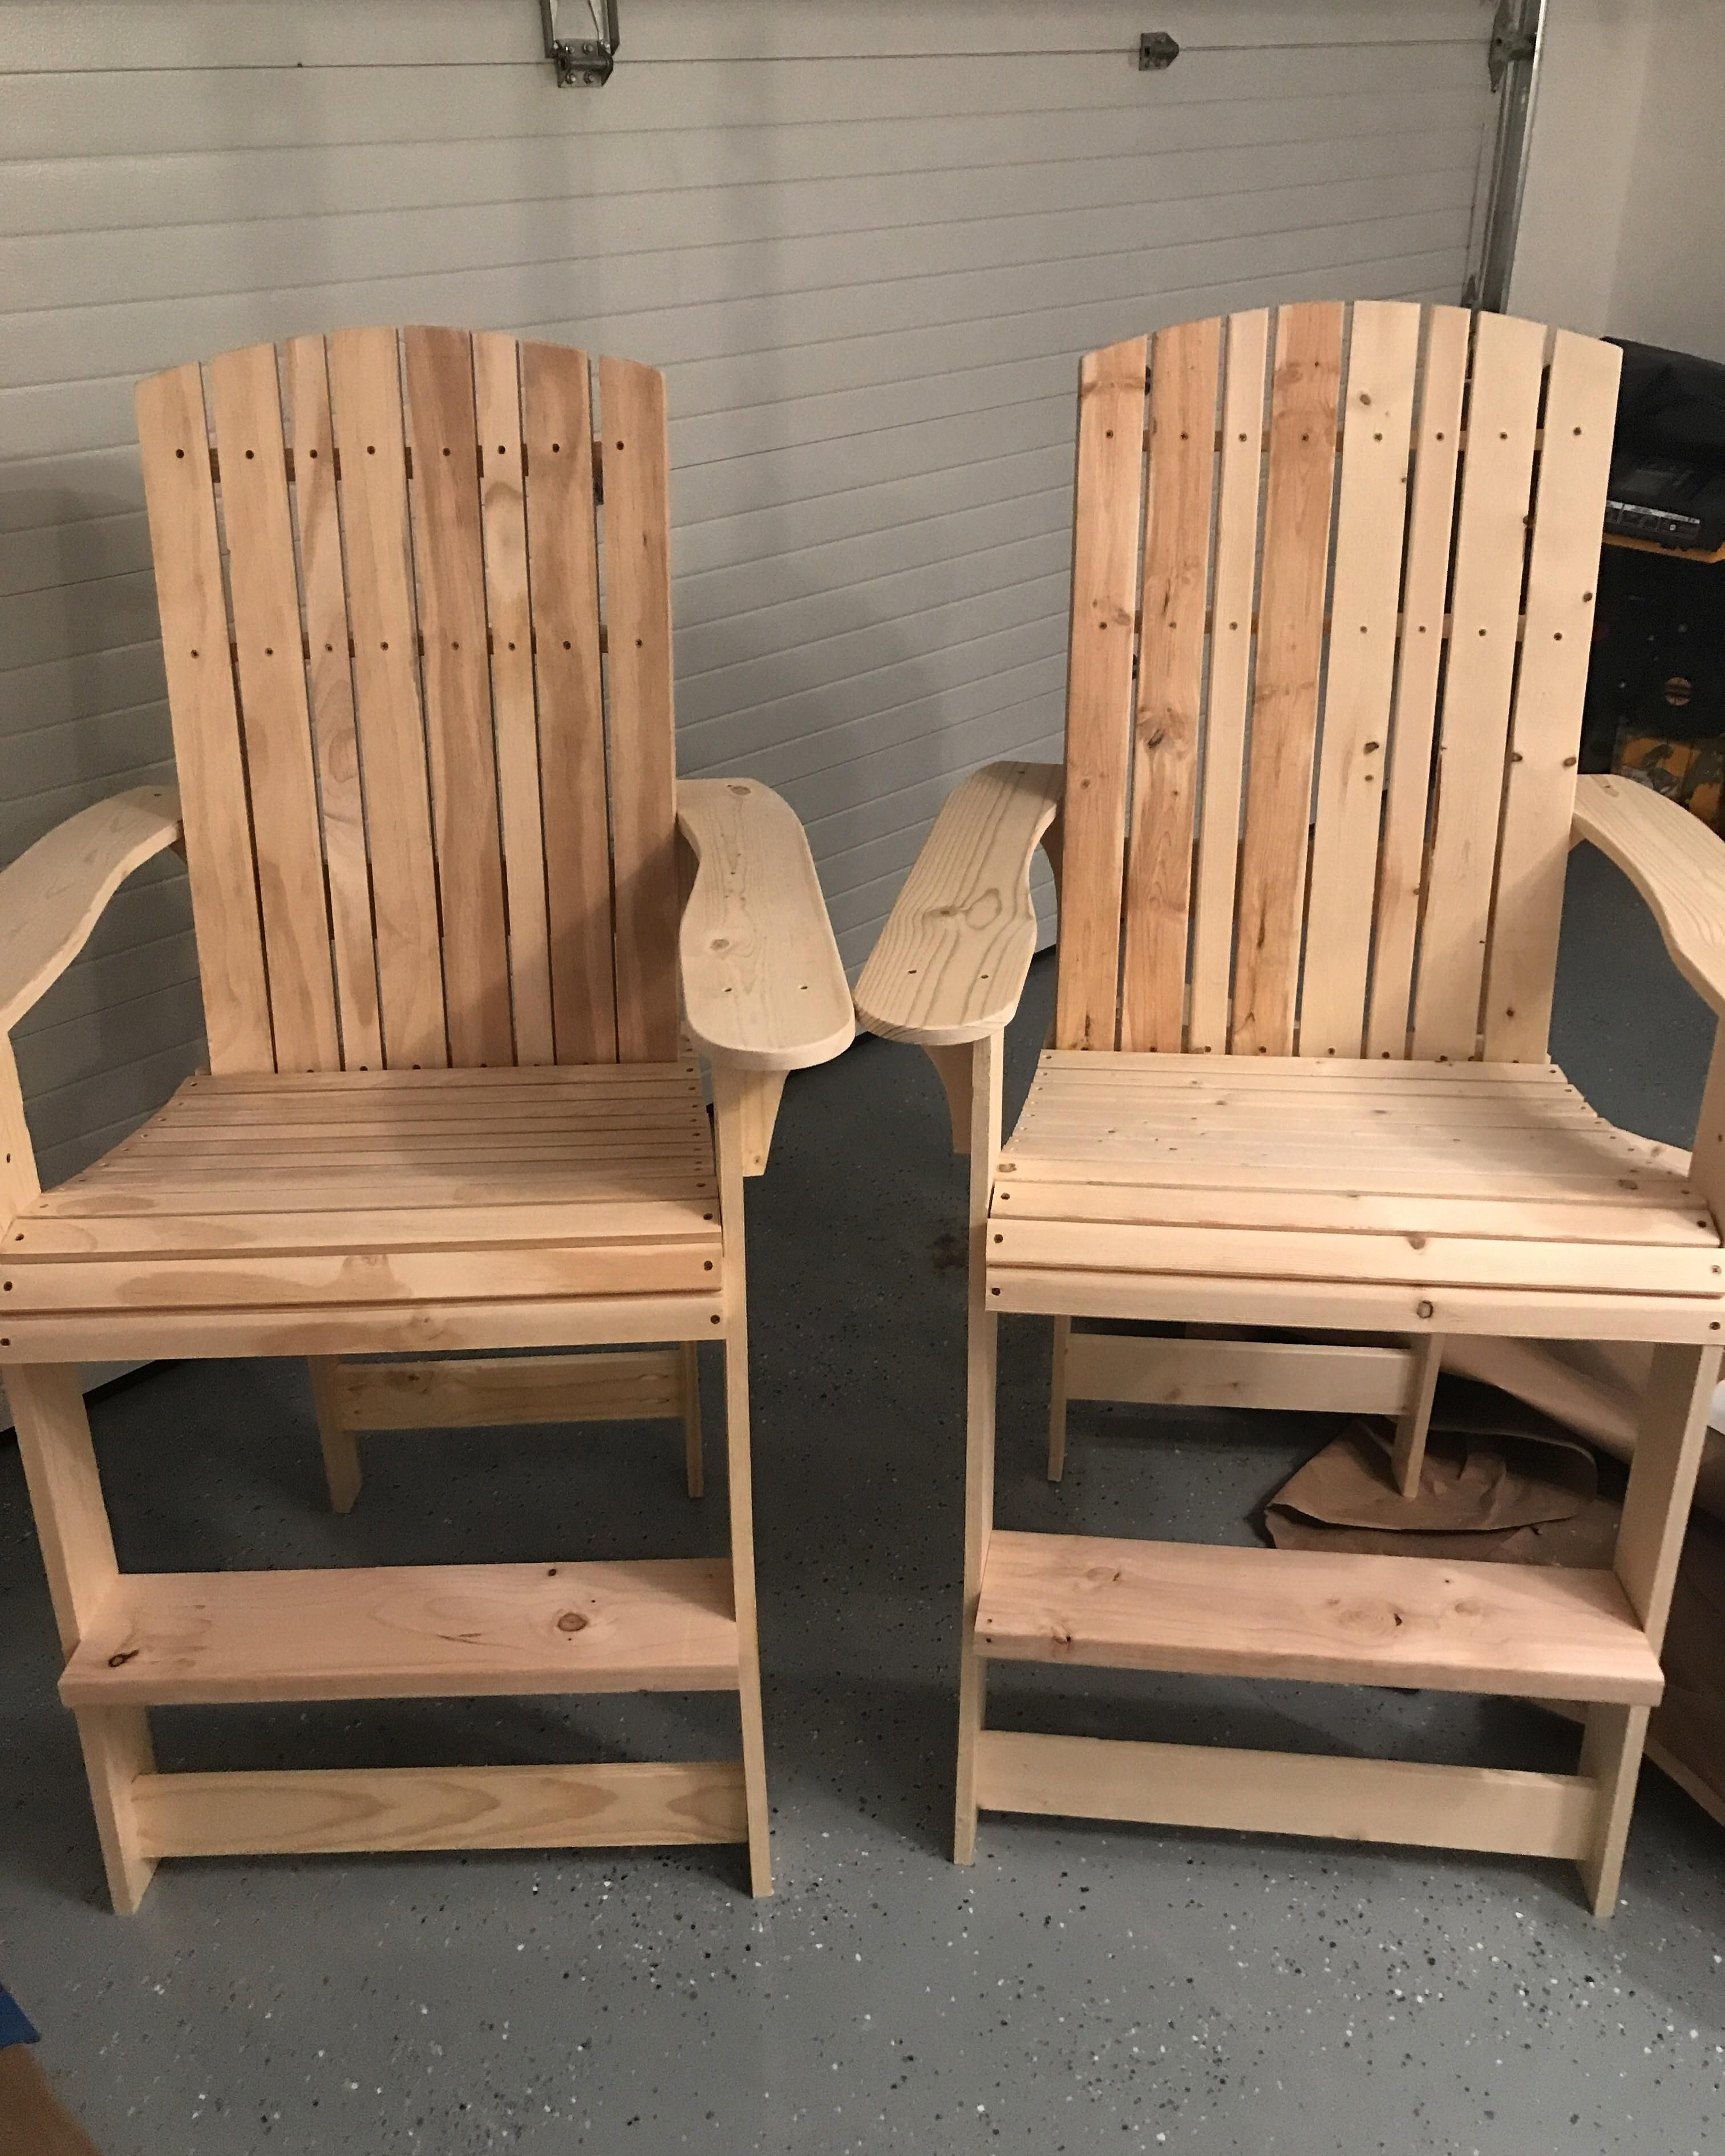 i decided to build some adirondack style chairs for my deck went